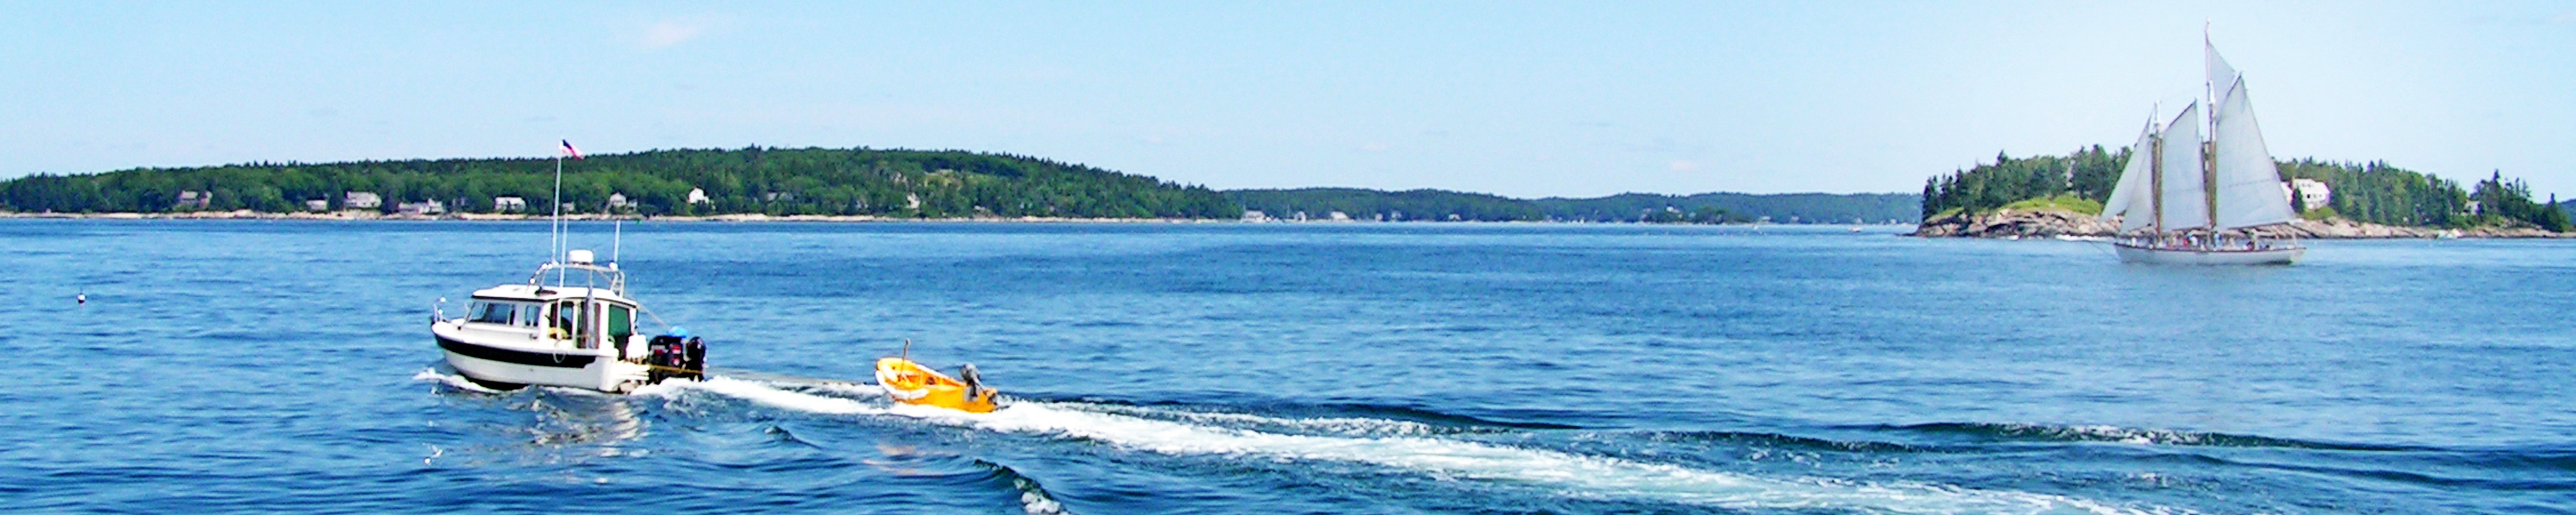 Fourth place in 2017 Natutical Delights photo contest depicts East Penobscot Bay, Maine.